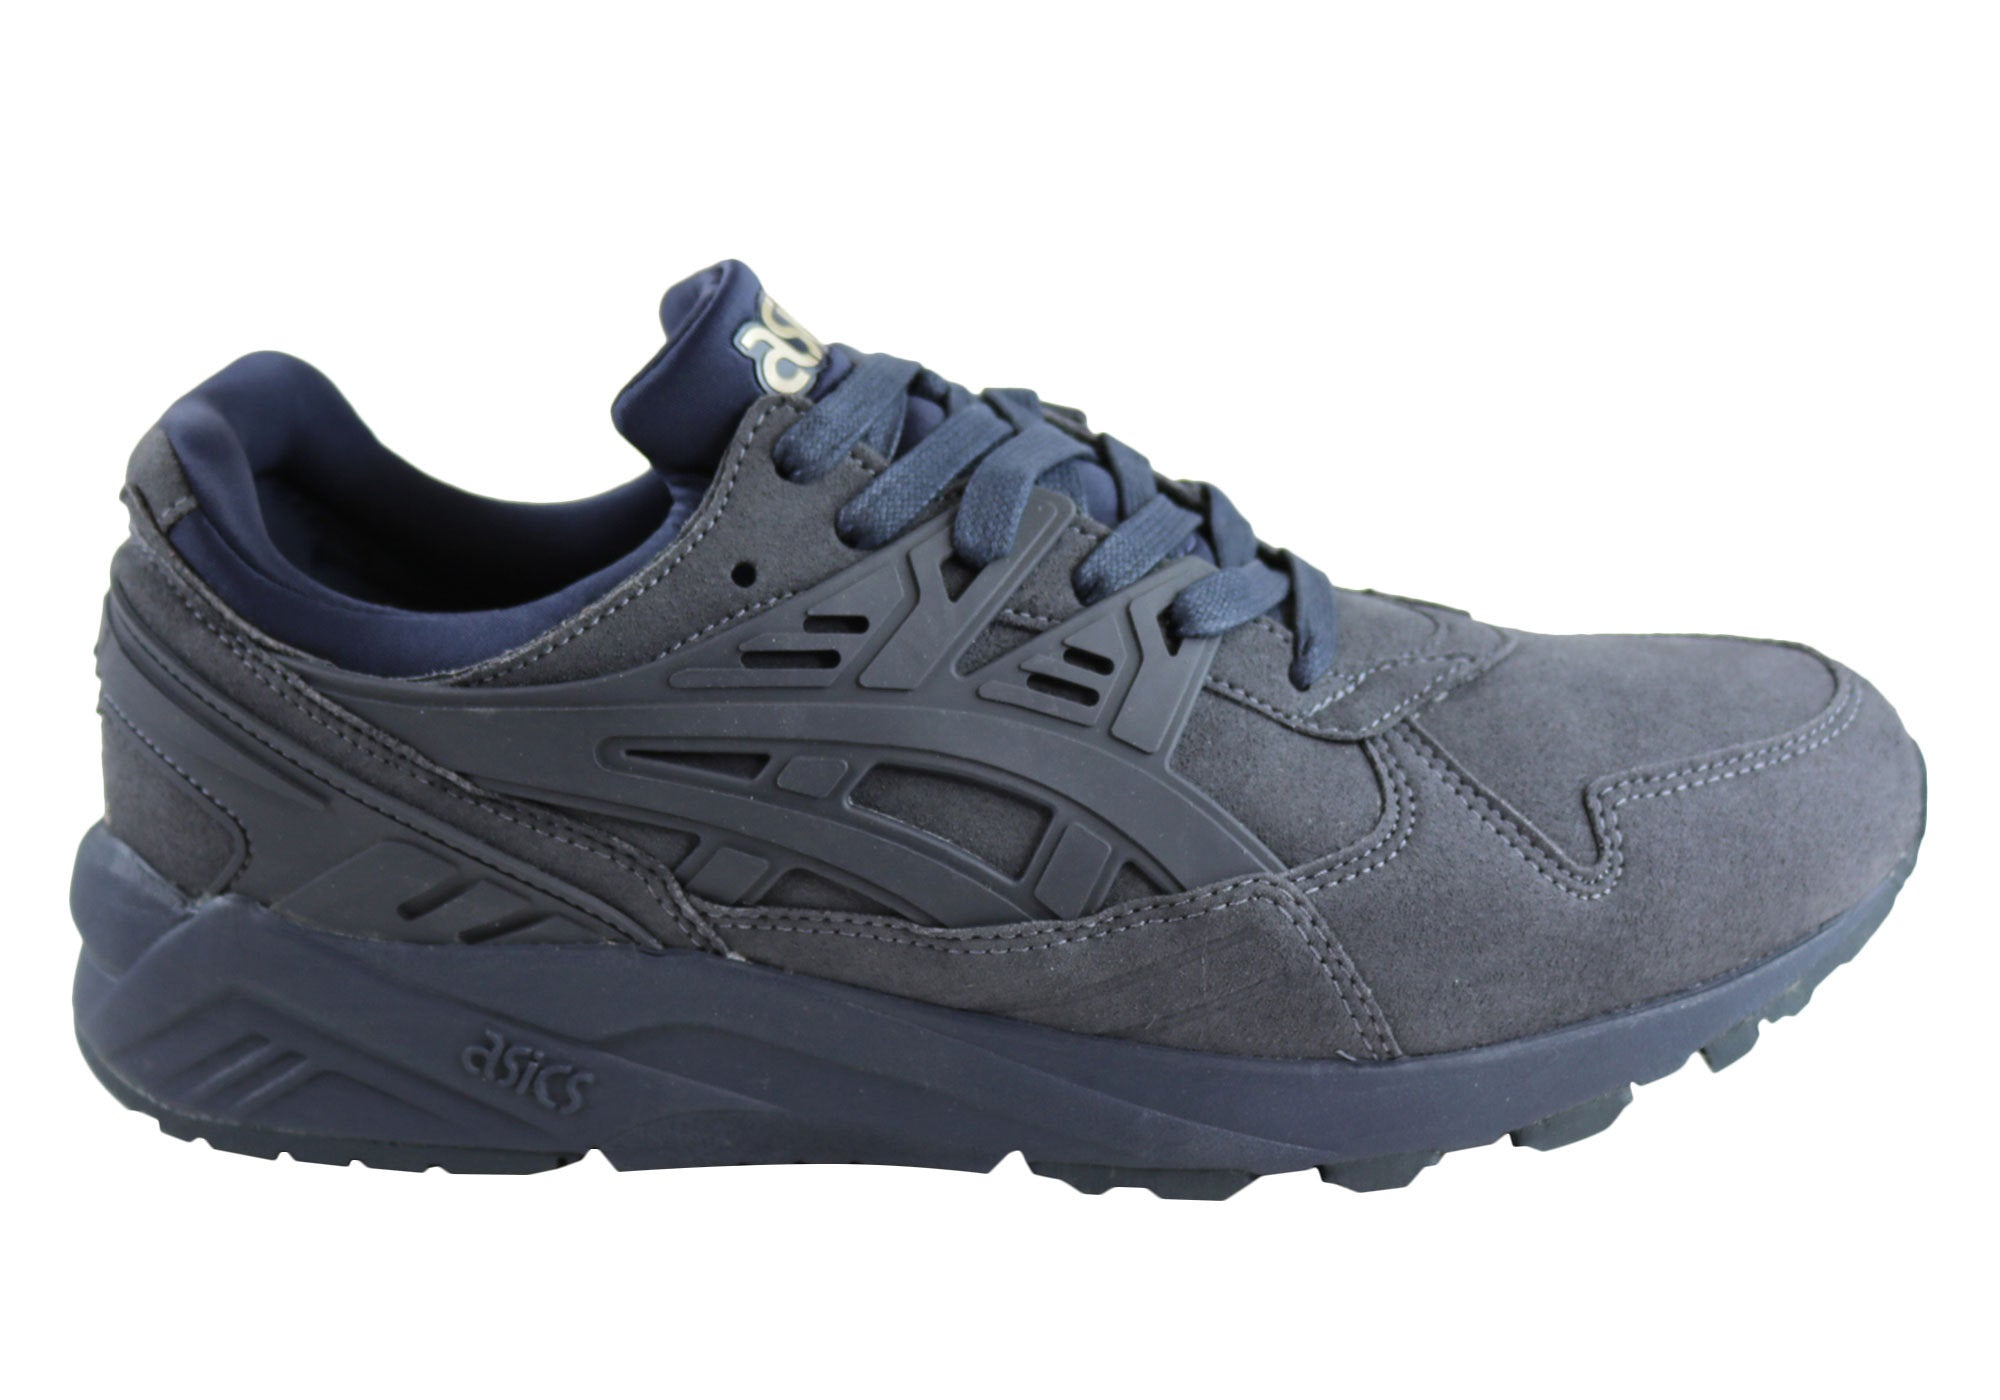 1a2c2040 Asics Gel Kayano Trainer Mens Retro Style Running Shoes